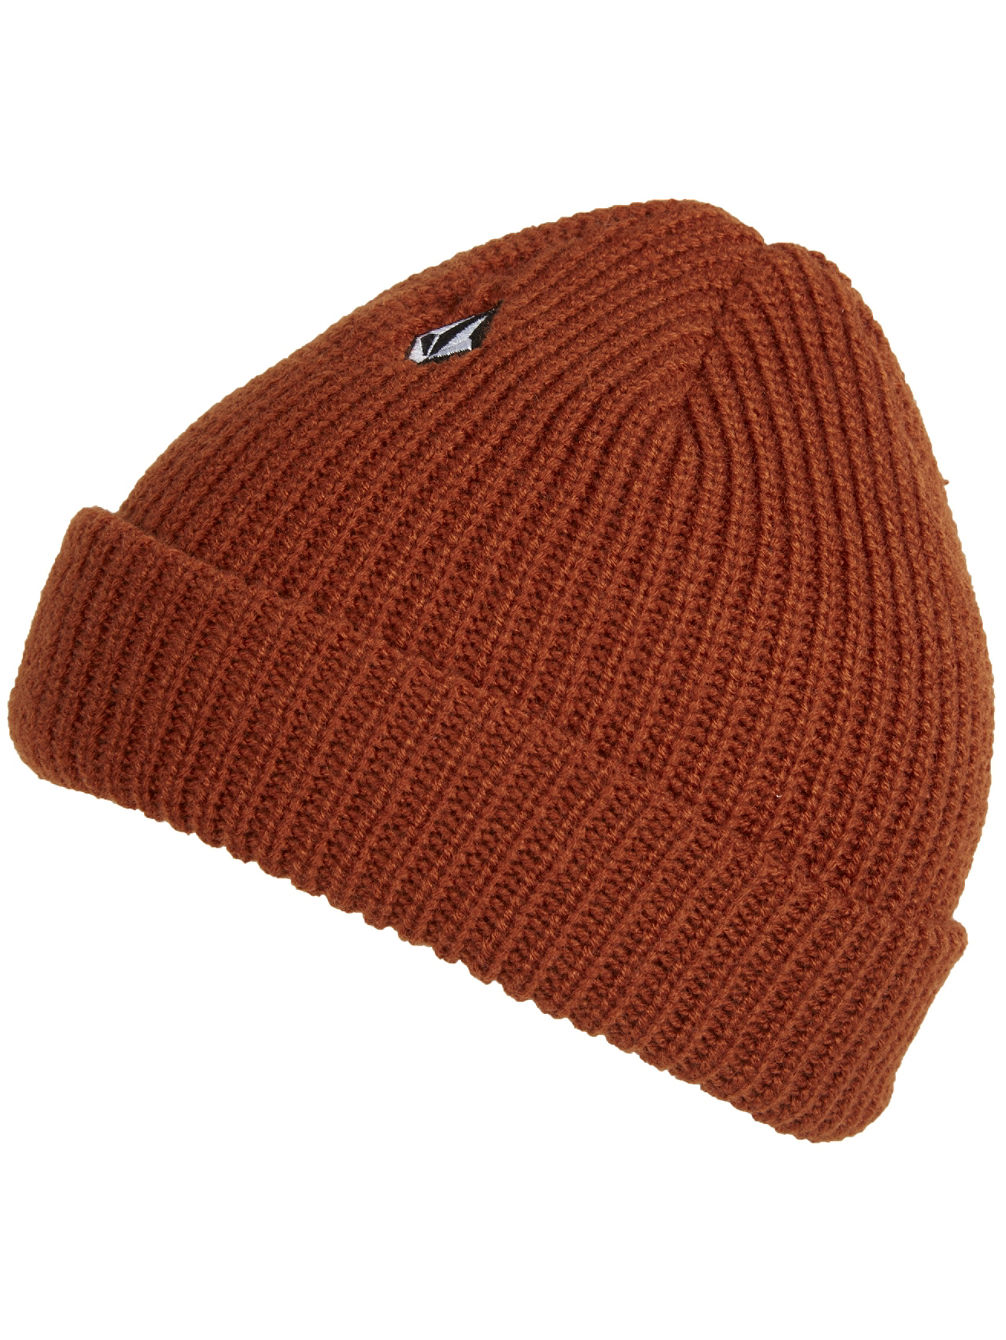 Full Stone Beanie Youth